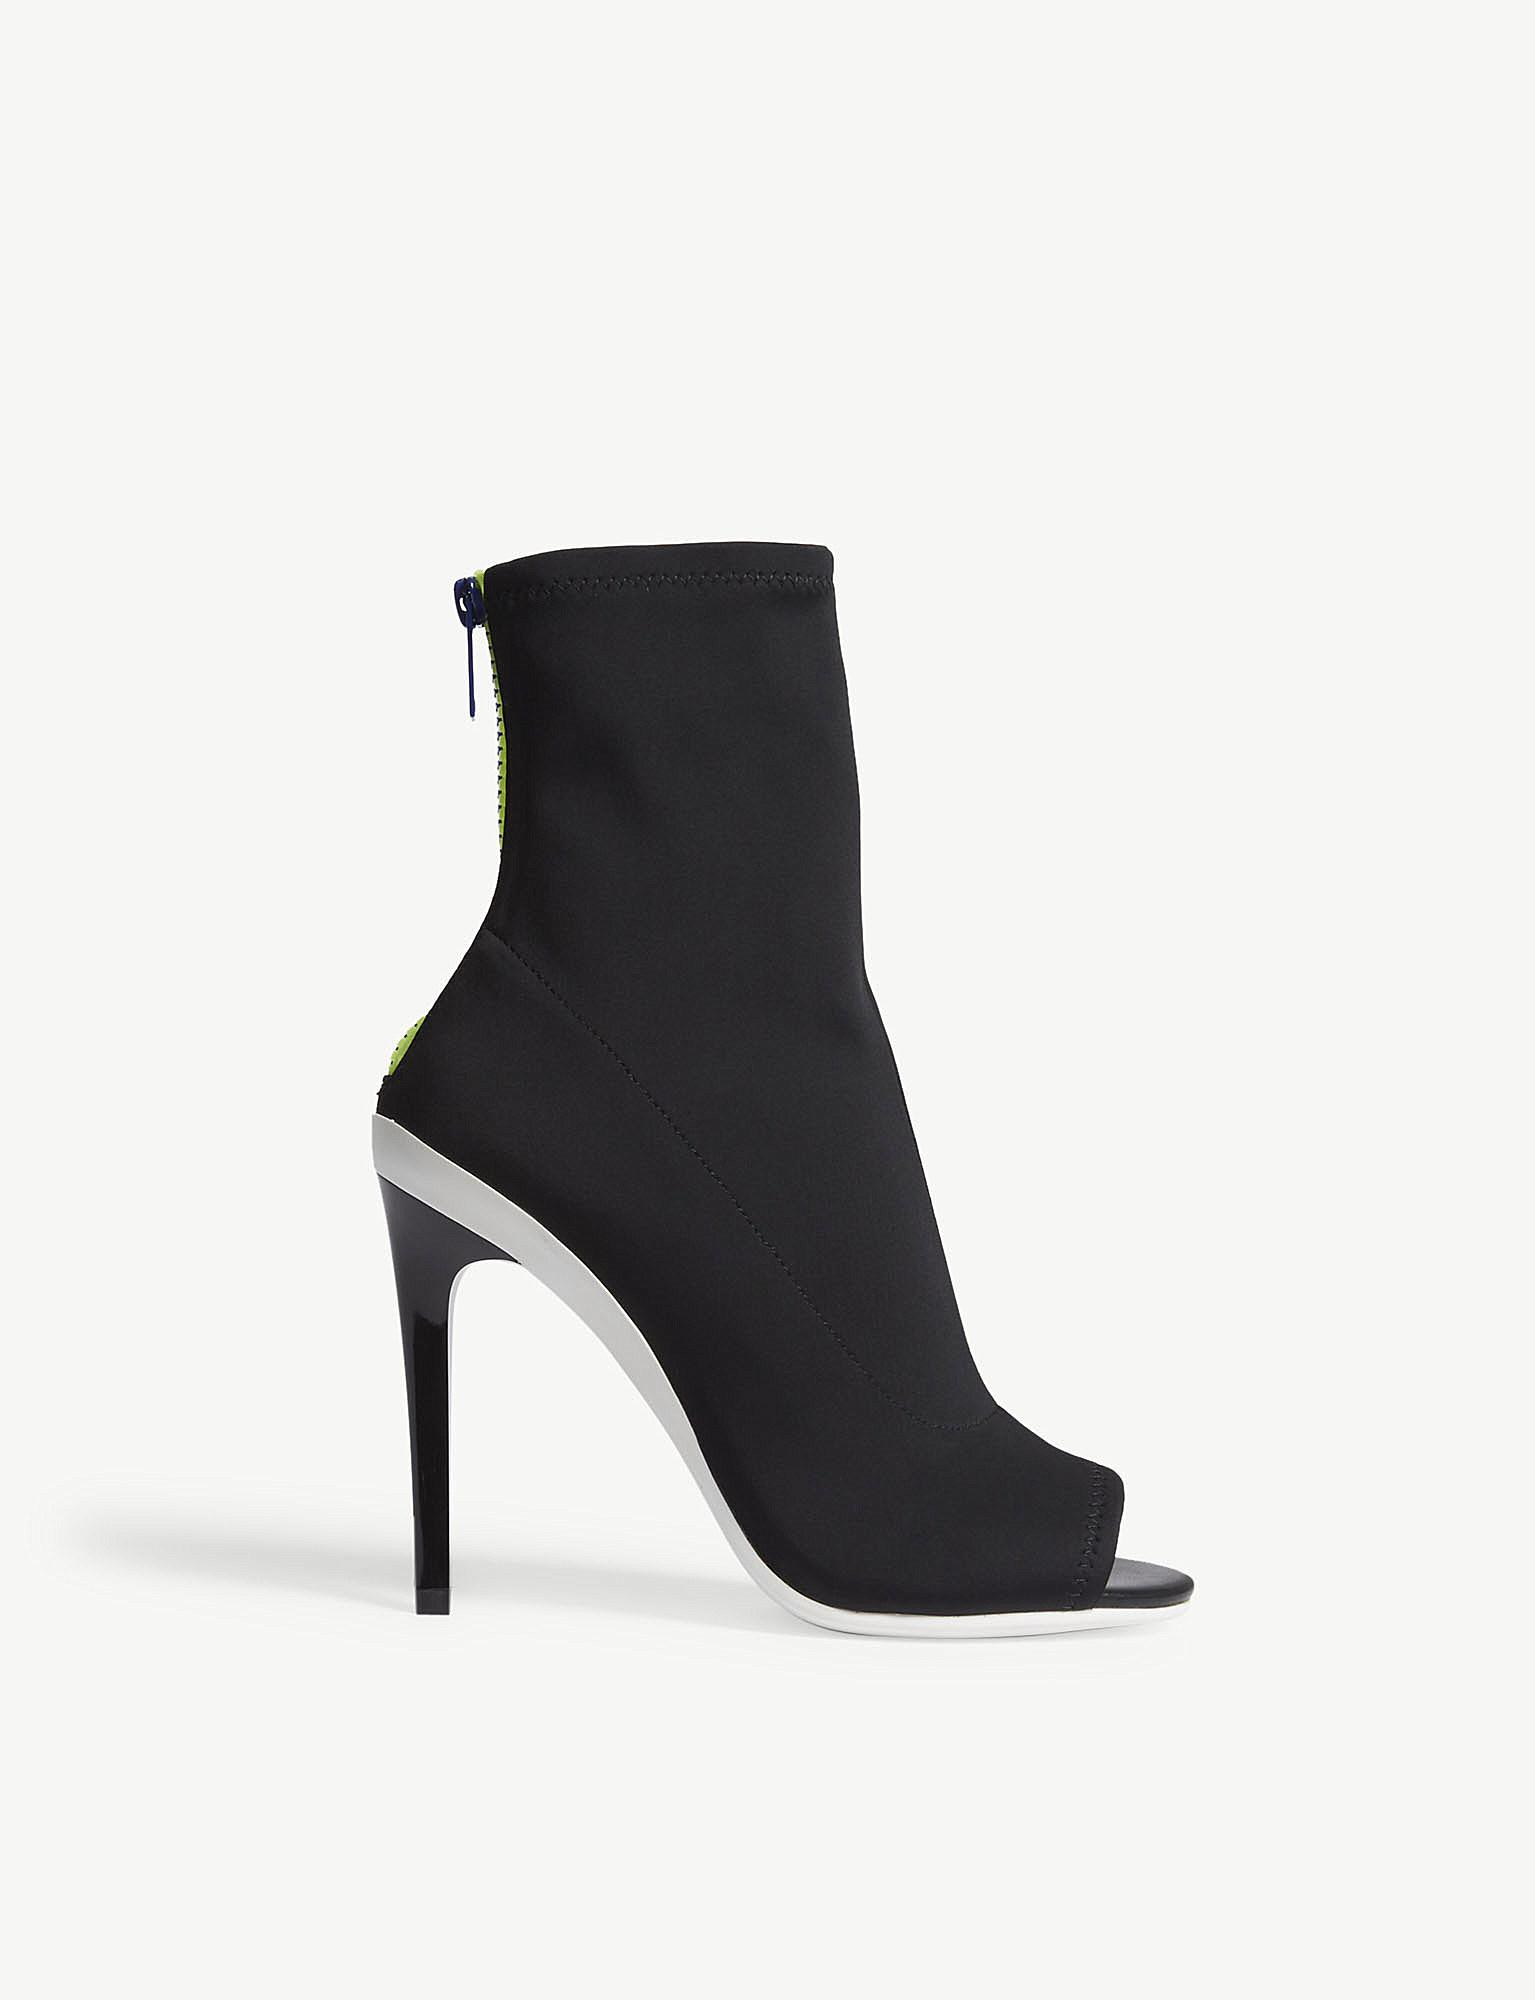 7abb0044f8445 ALDO Ulyssia Open-toe Heeled Ankle Boots in Black - Lyst